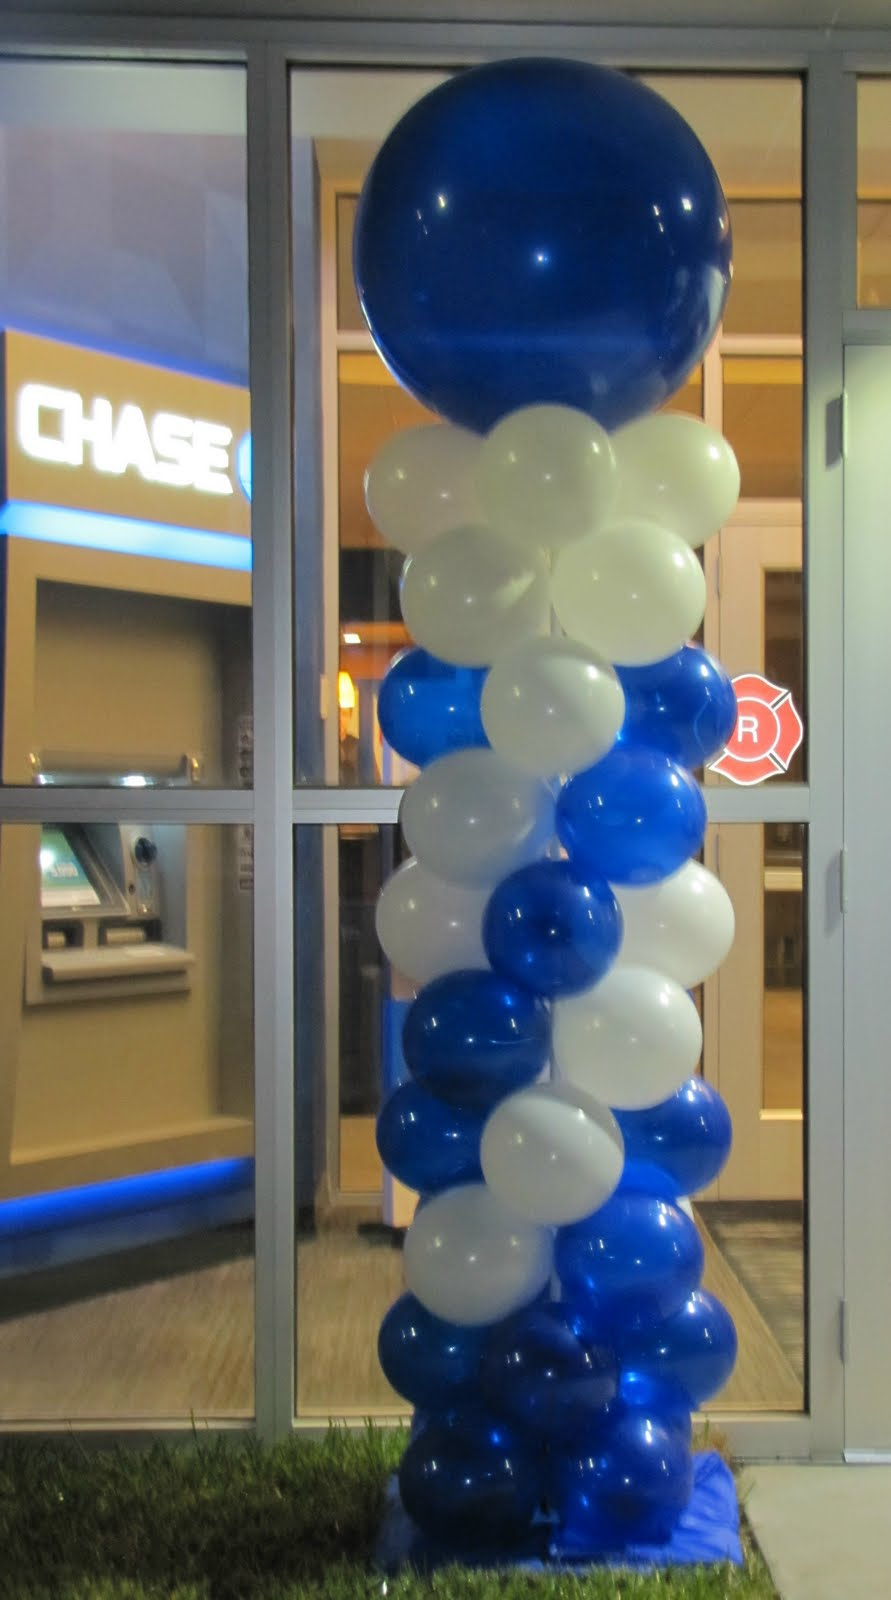 Party people event decorating company chase bank grand for Balloon decoration companies